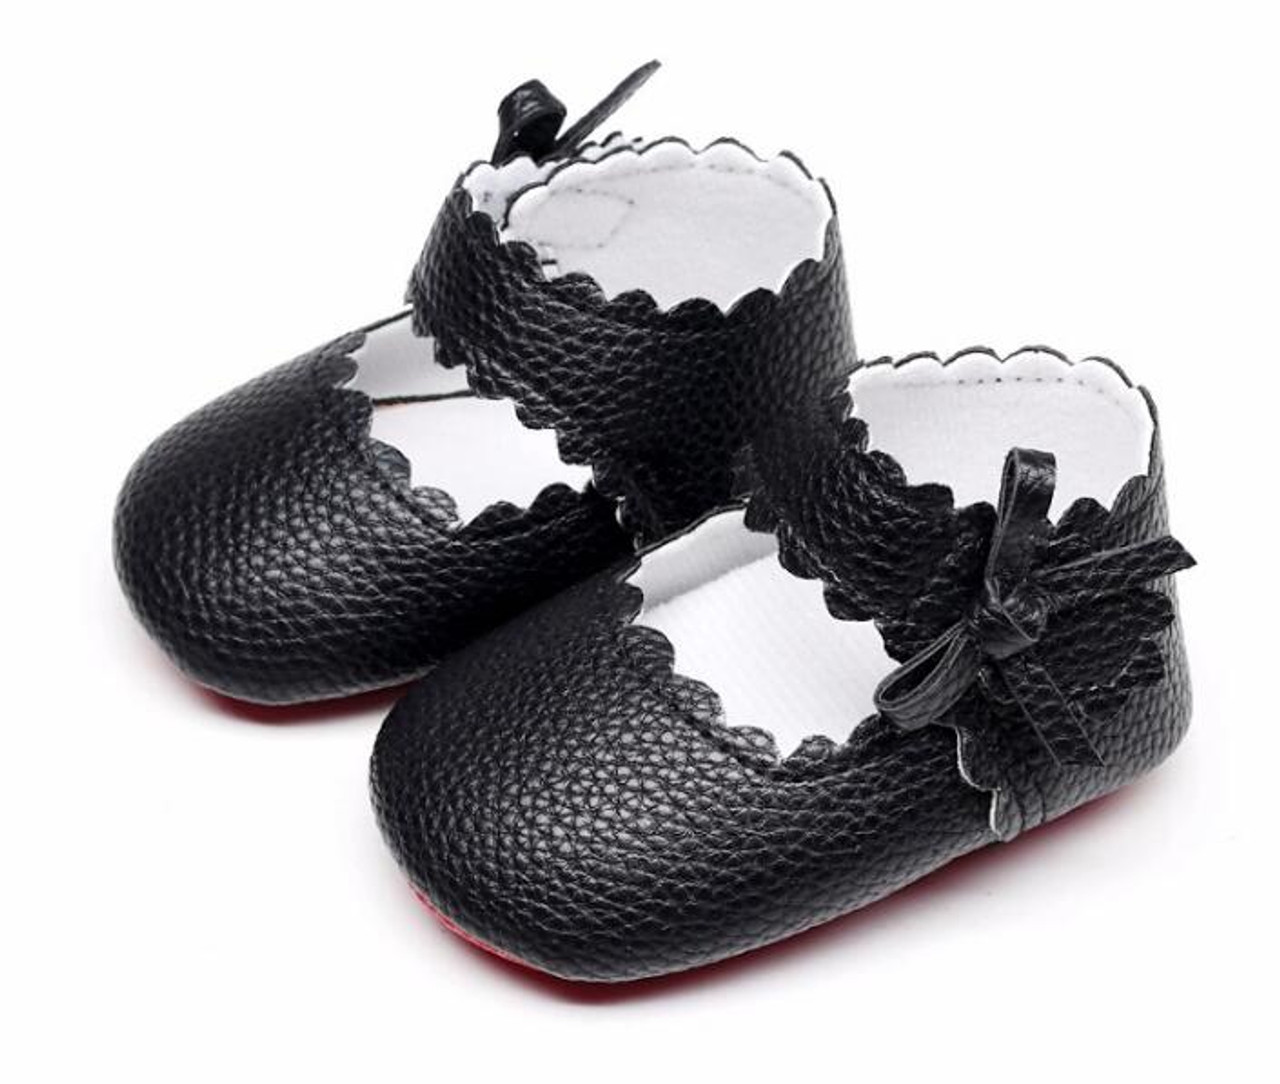 69aa8f6d35e2 ... HONGTEYA New style Baby Girls soft Red sole Ballet Dress Shoes PU  leather Mary Jane Sidebow ...